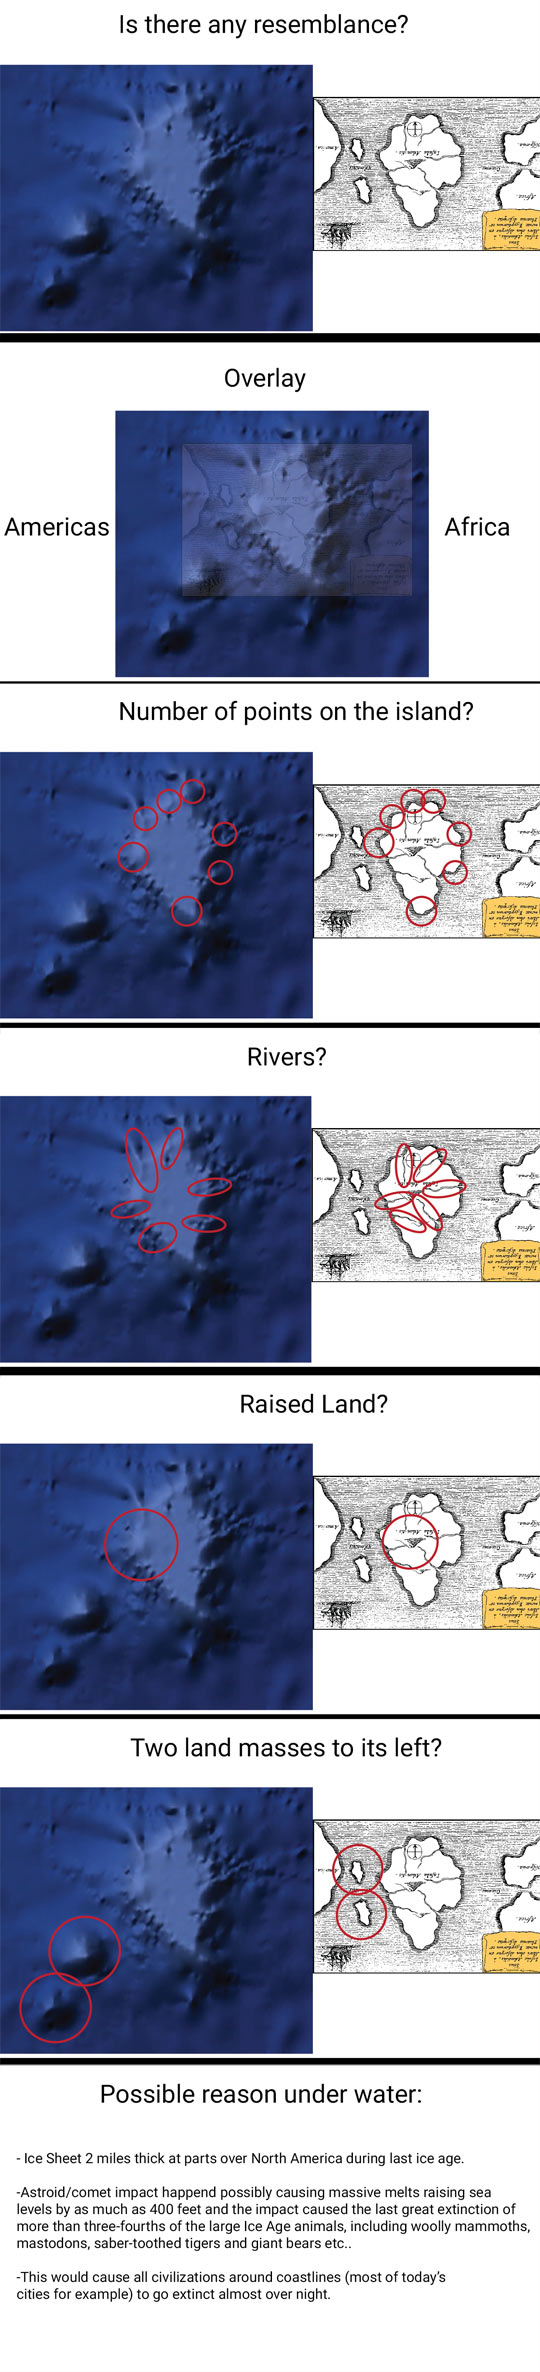 funny-Atlantis-island-maps-search-proves-resemblance